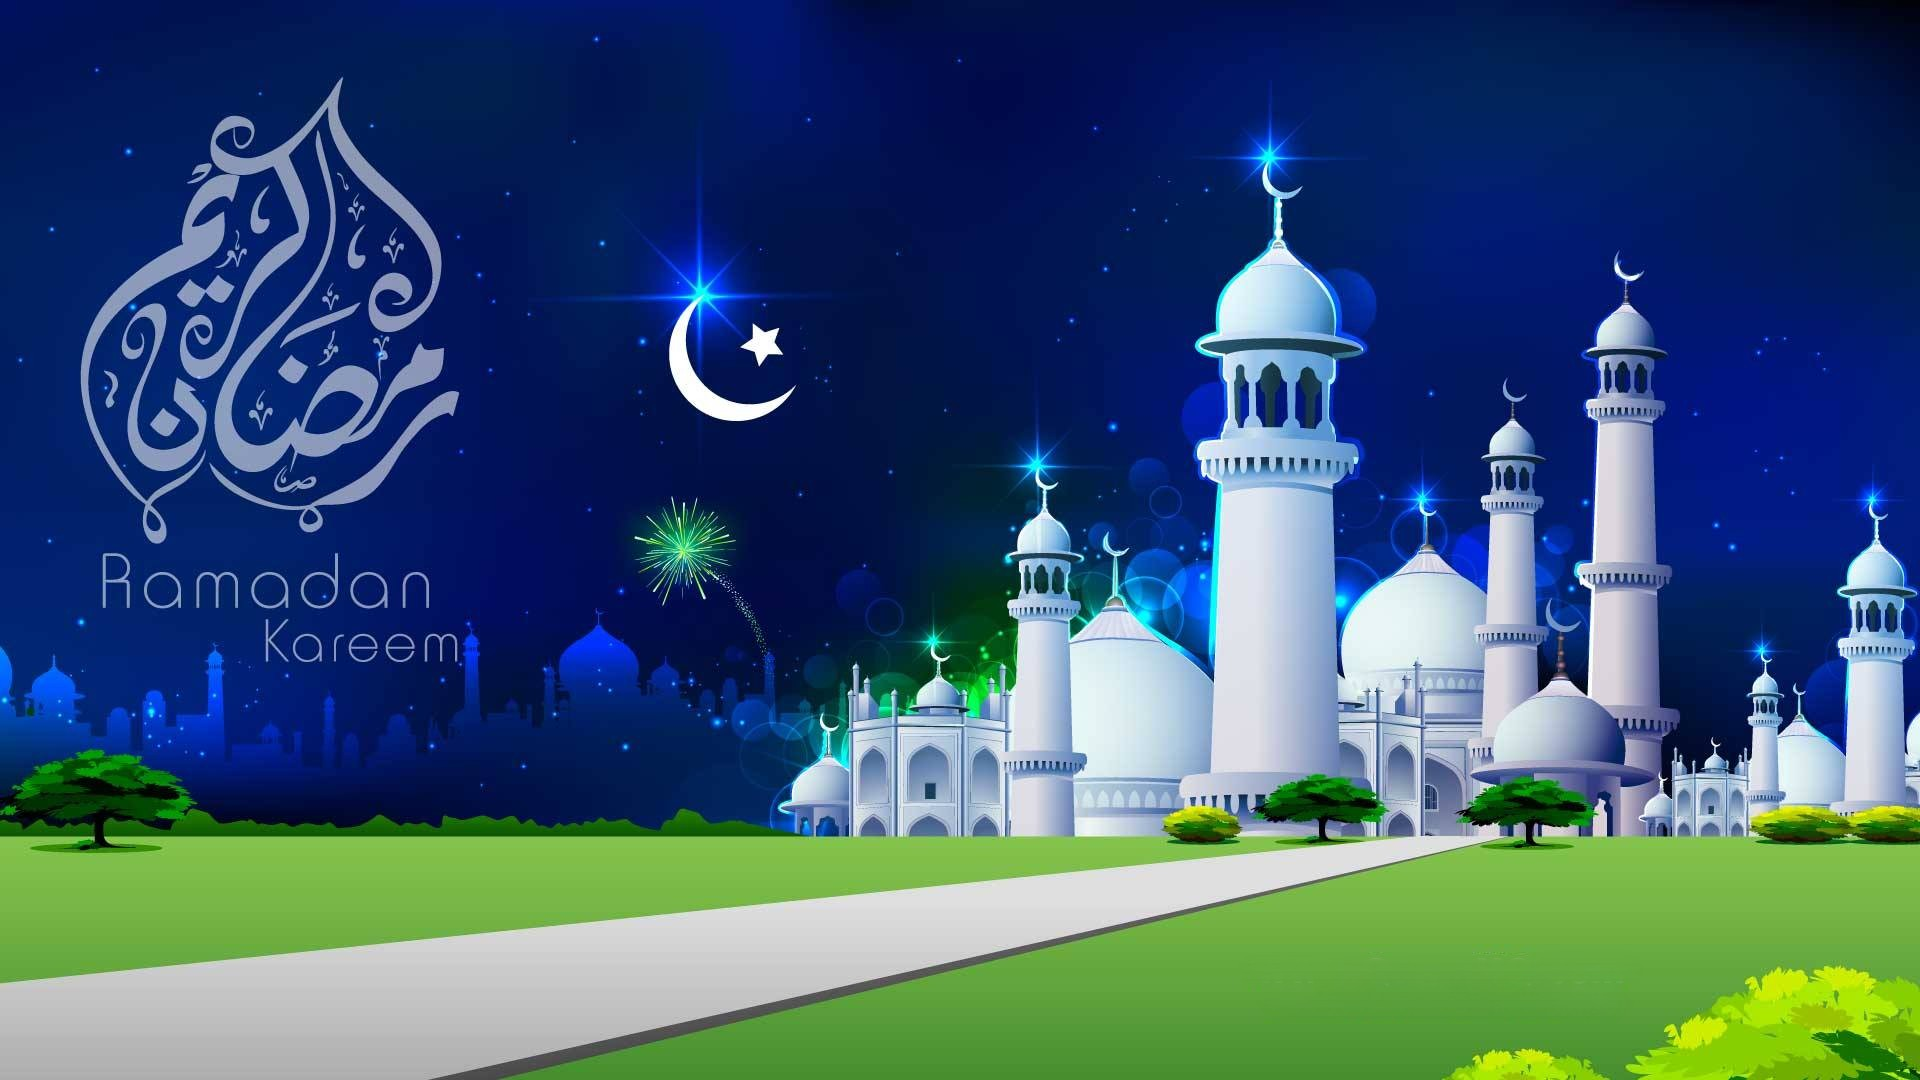 Ramadan Kareem profile pictures dp for whatsapp, facebook